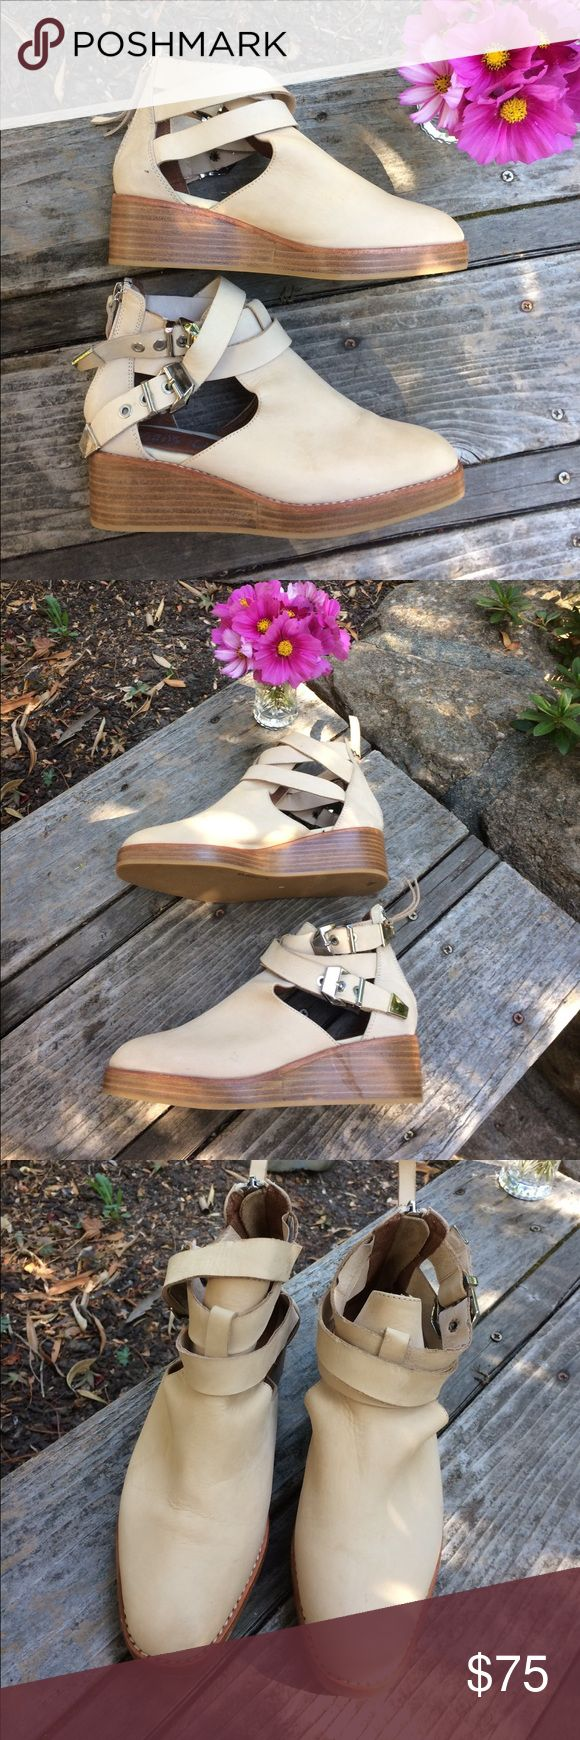 🌺 Jeffrey Campbell - Handmade Leather Shoes Sz. 6 Rare Find! Check out these adorable Jeffrey Campbell Ibiza Handcrafted Wedge Shoe/Boots in a Beautiful, Neutral Tan Color. Perfect for Year-Round Wear, and in great Pre-Owned Condition! Women's Size 6. These were made to last! Zipper down back & two Buckles on each side. Wish they were my size! Thank you for shopping here. Please check out other items in my closet & bundle to save 💰. I 💖my Posher Pals & Ship Fast for you! Debbie 💃💃💃…